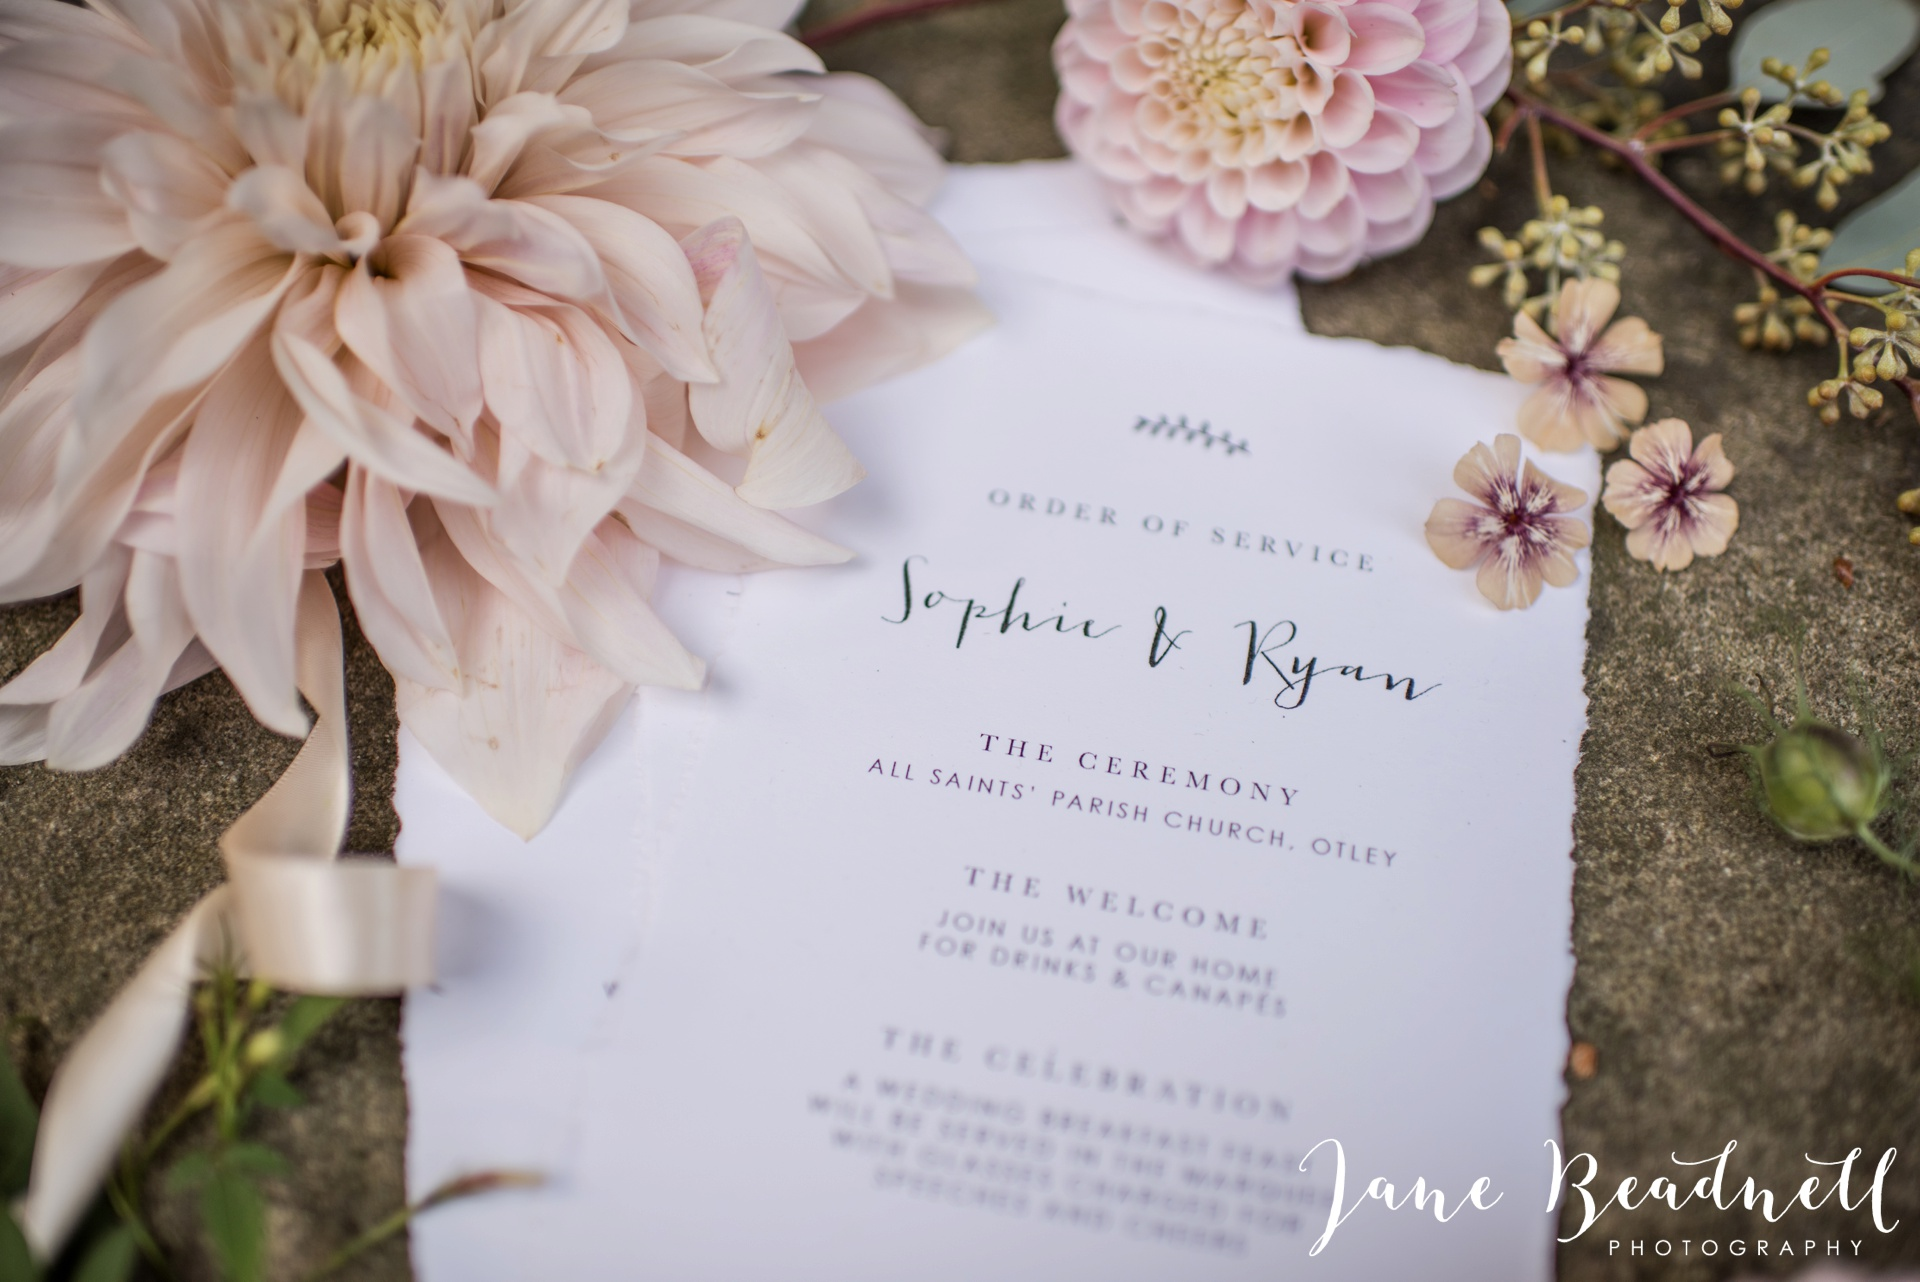 yorkshire-fine-art-wedding-photographer-jane-beadnell-photography-with-leafy-couture-wedding-flowers_0031